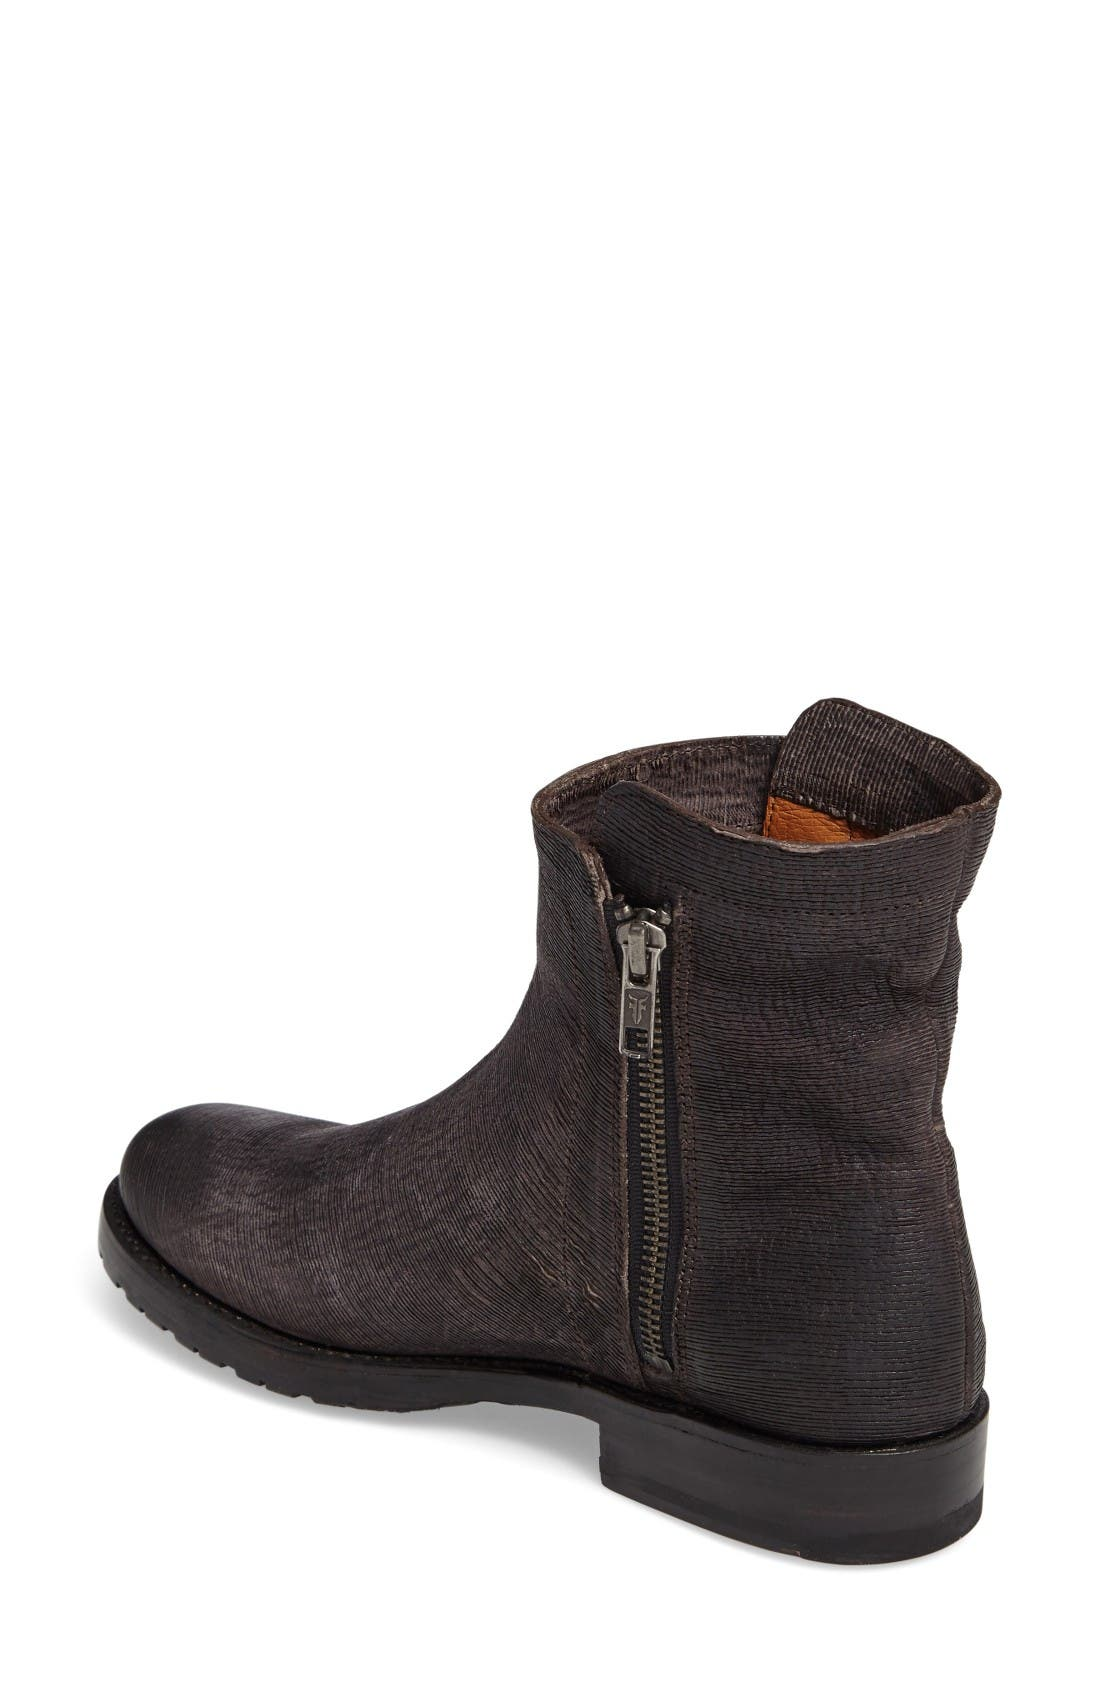 Alternate Image 2  - Frye Natalie Textured Double Zip Bootie (Women)